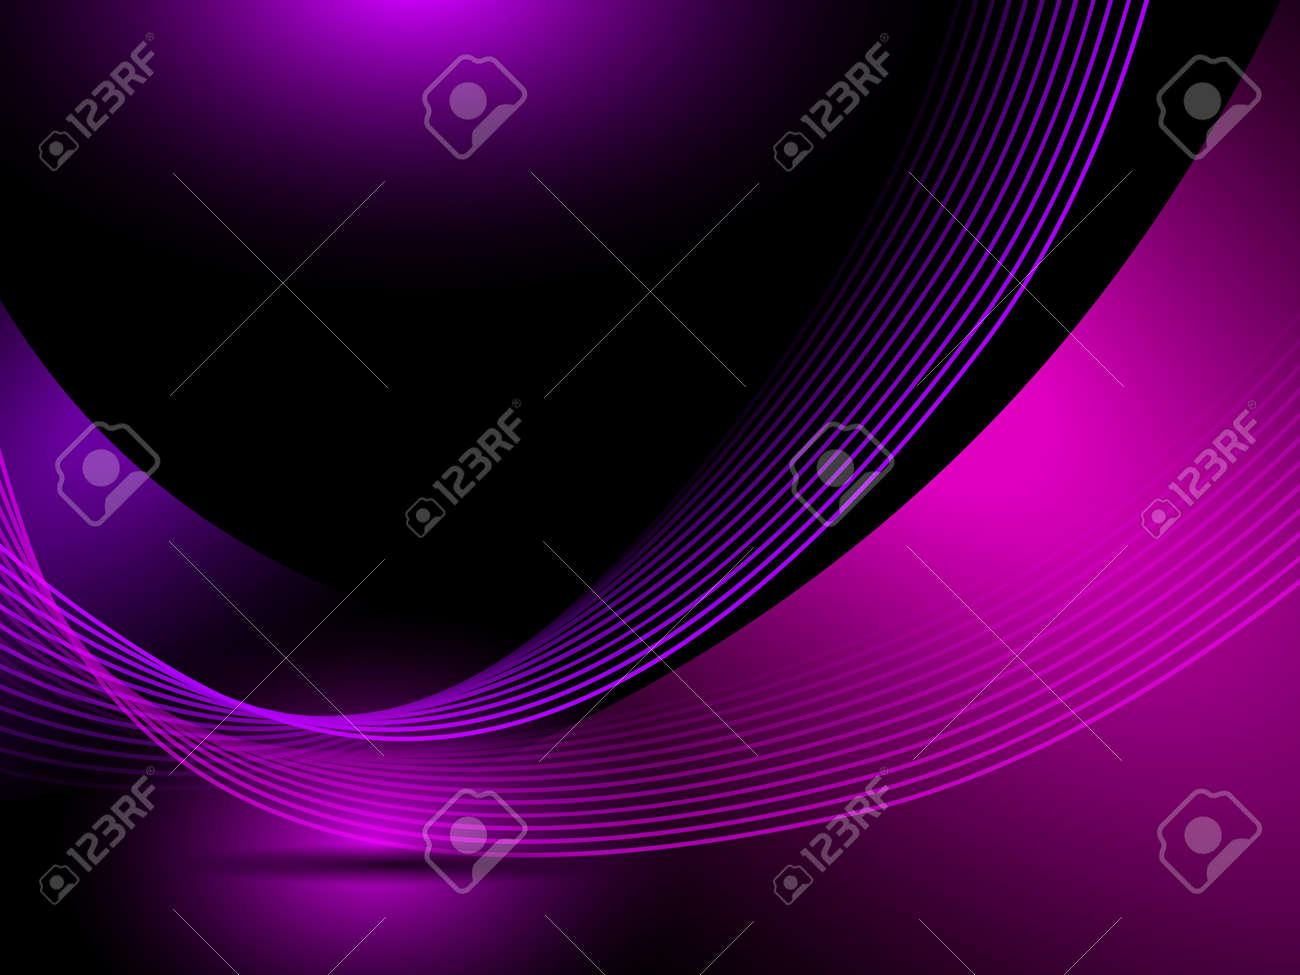 Abstract purple background lines Stock Vector - 16655859